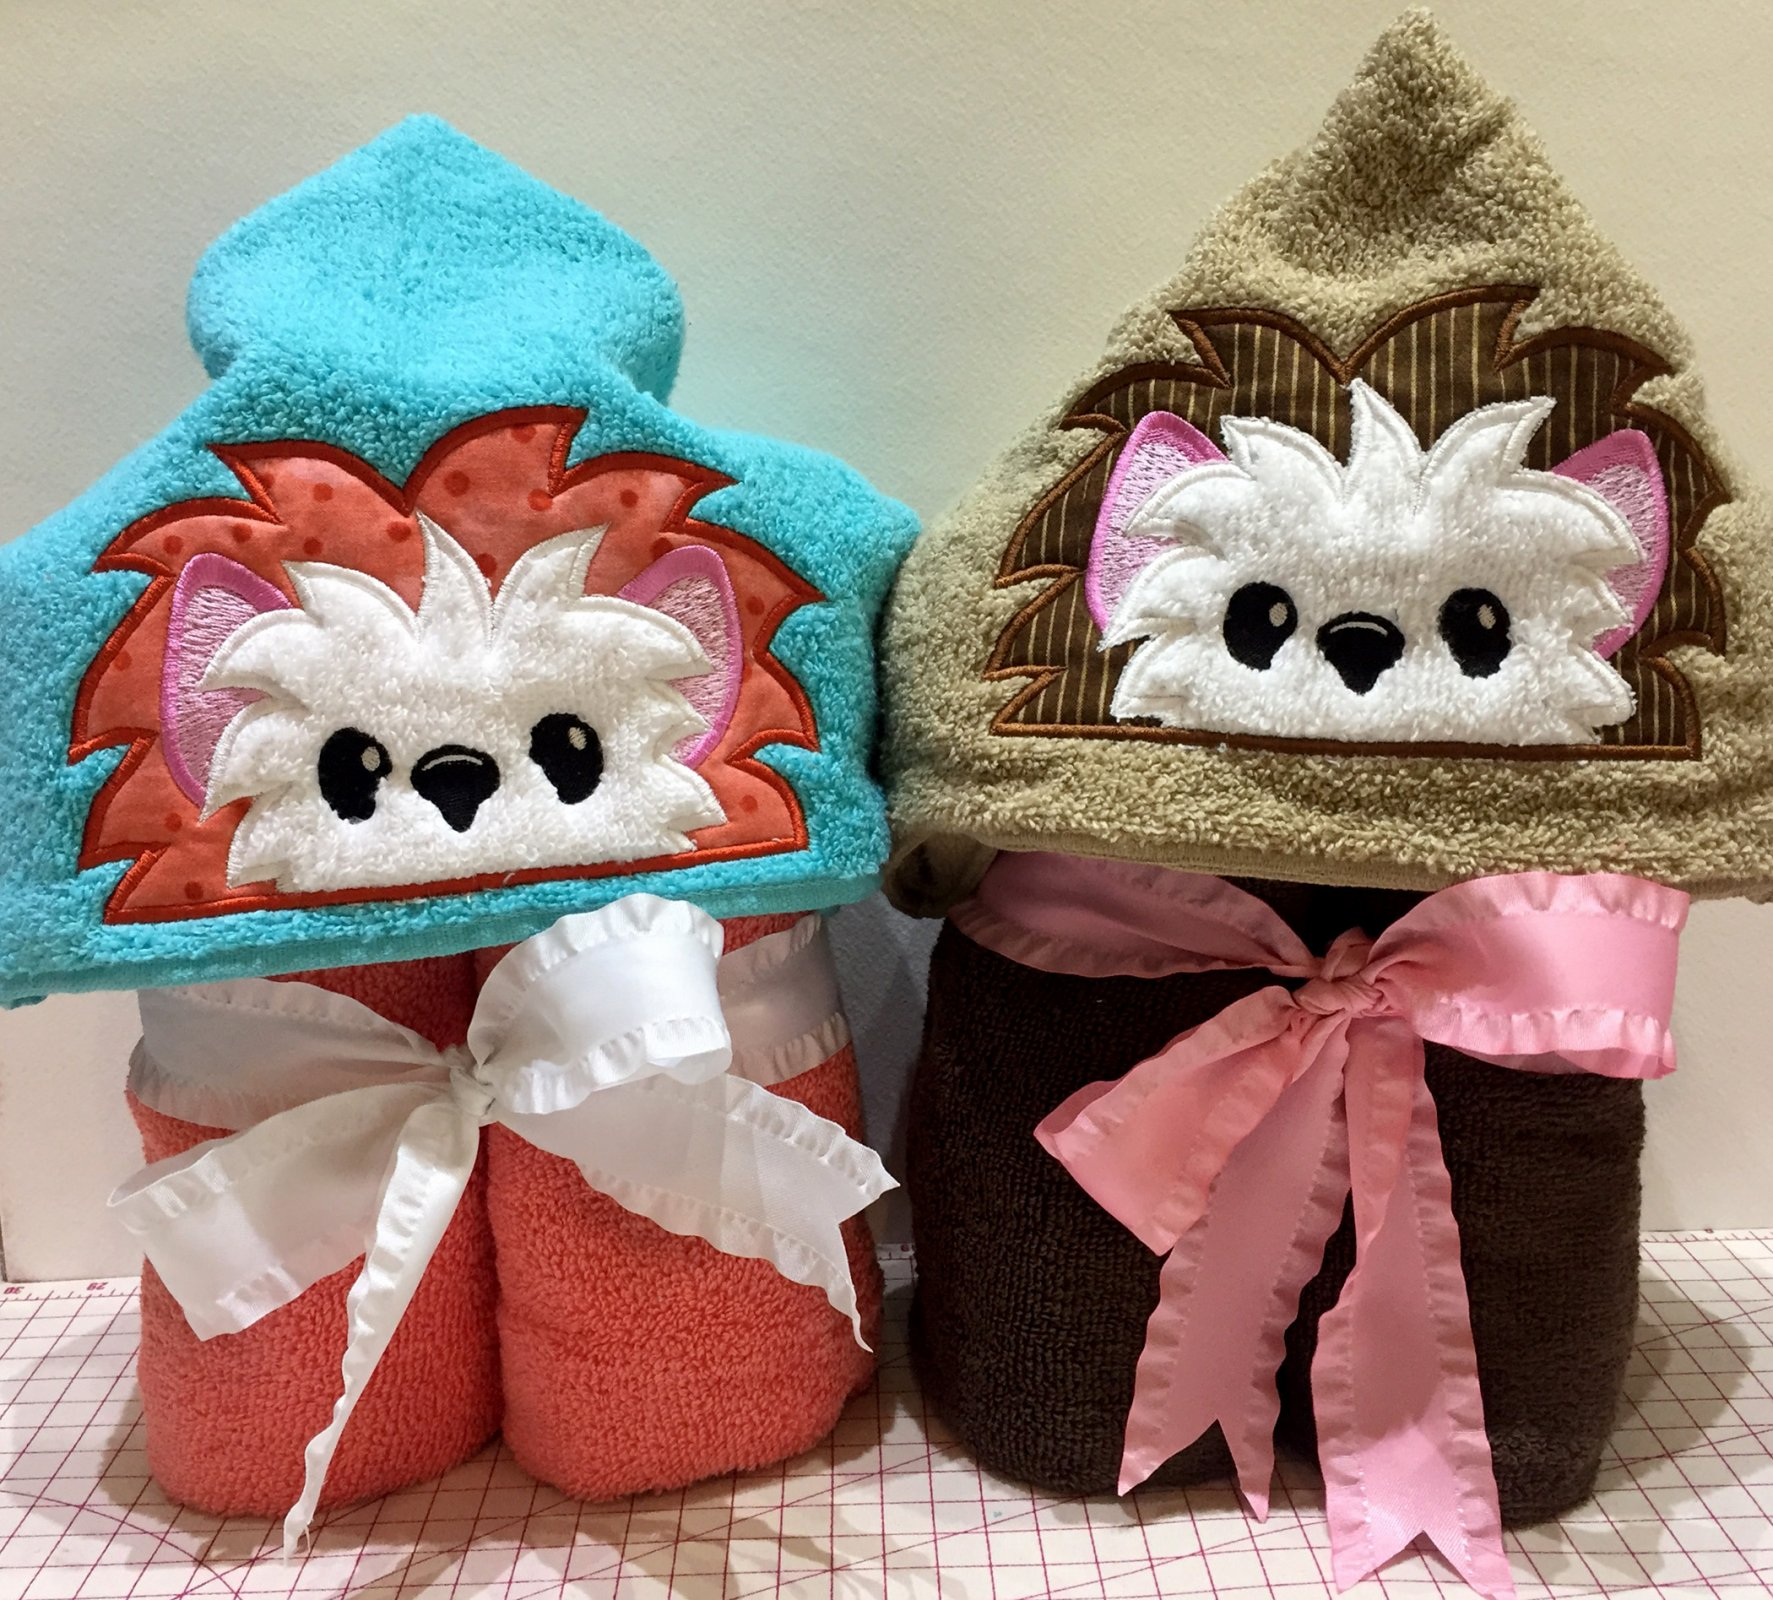 Hedgehog Peek-a-boo Hoodie Towel download